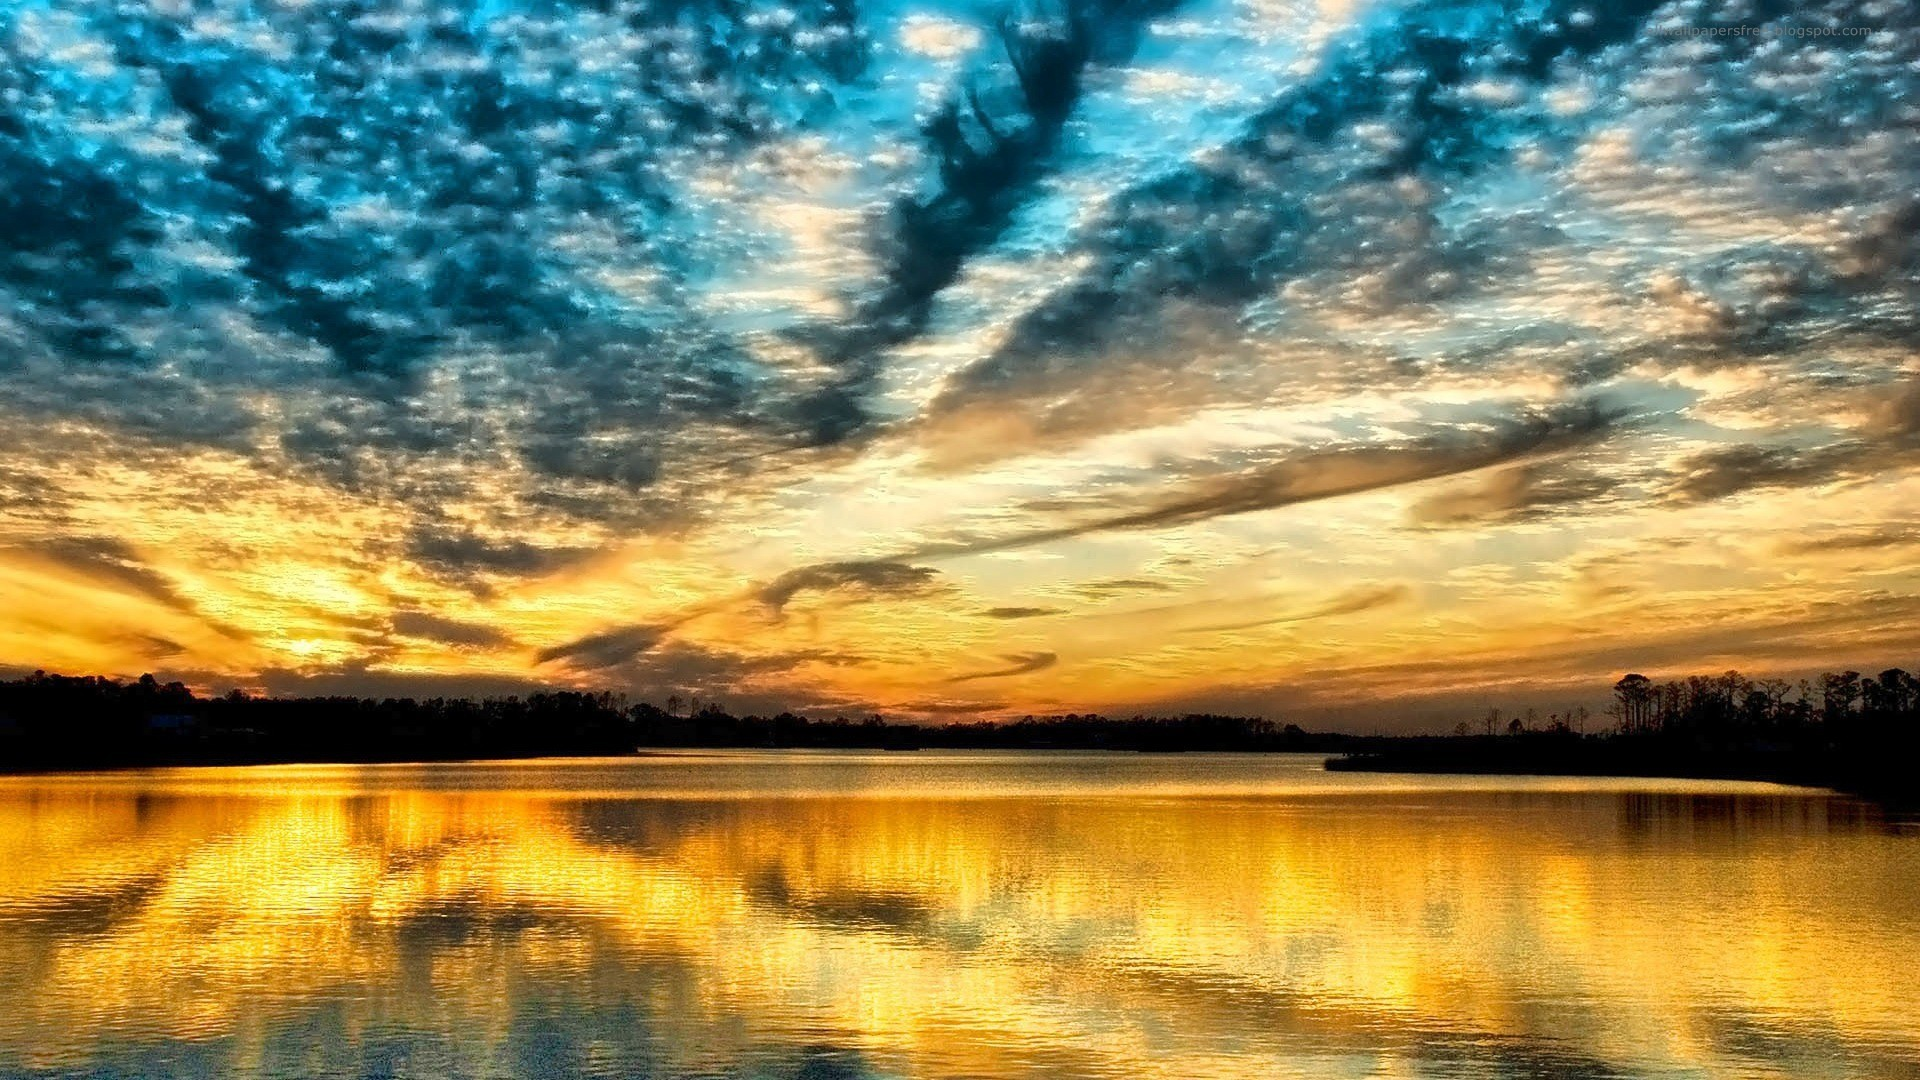 Sunsets and Sunrises images SunSet HD wallpaper and background photos ...